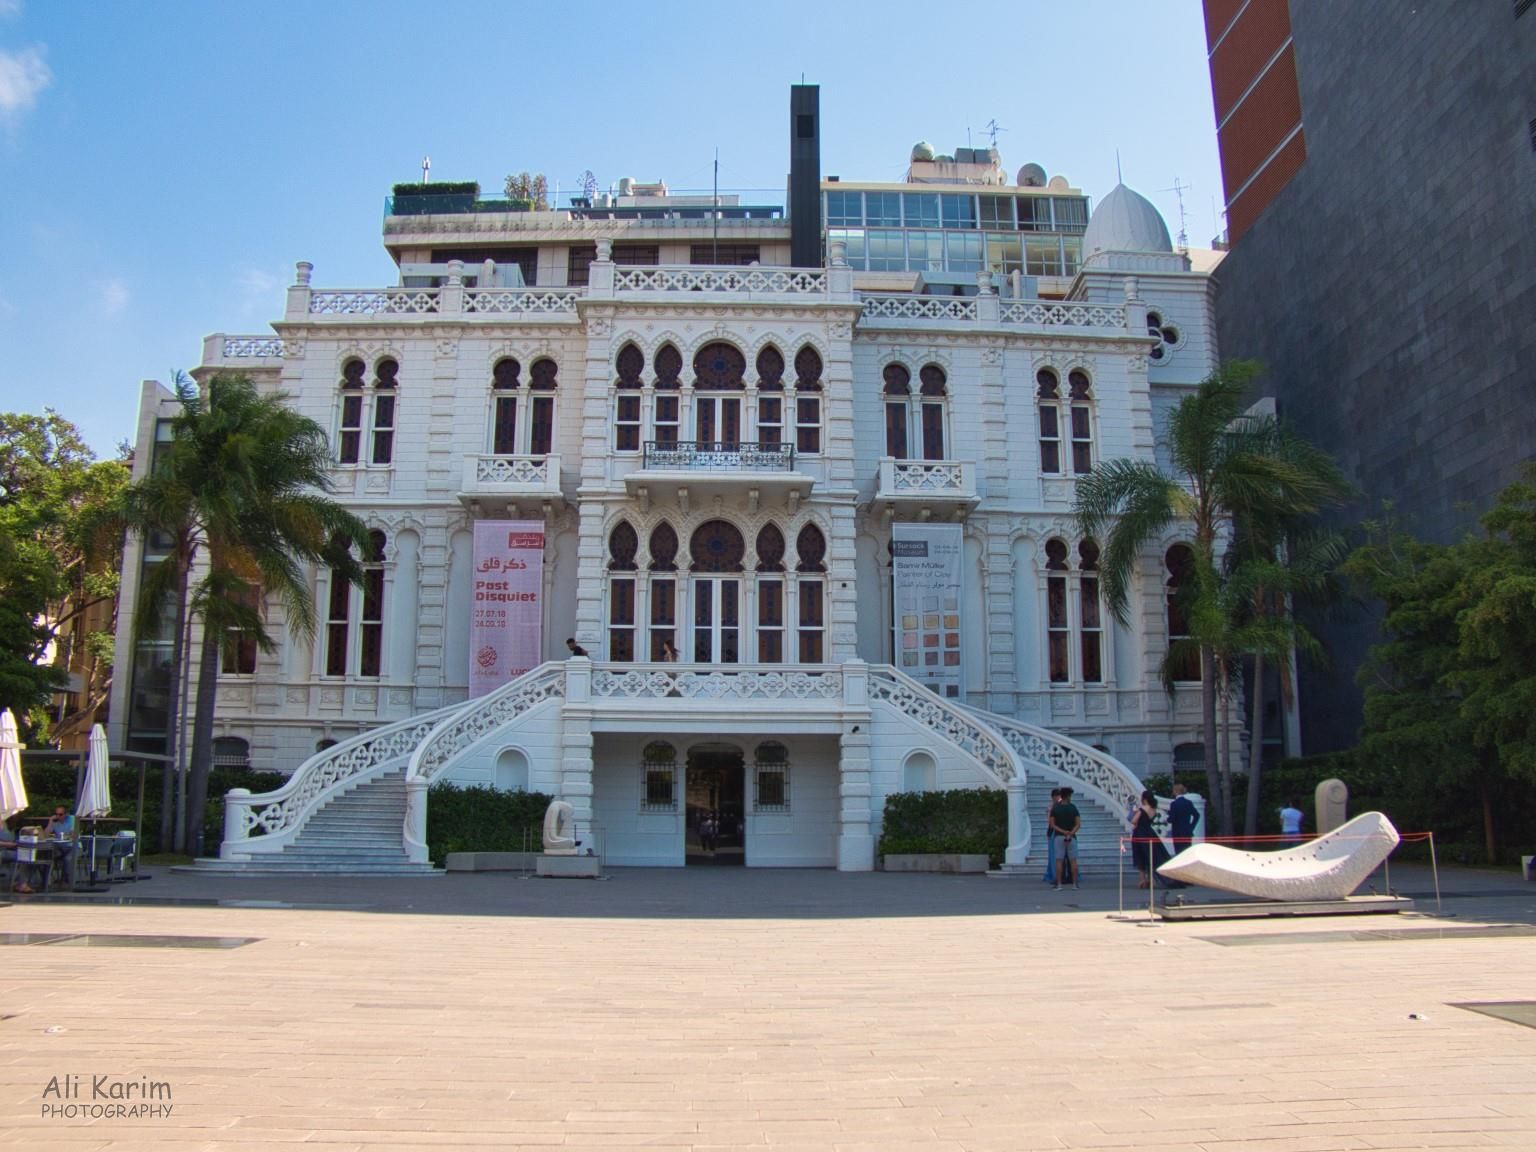 Sursock Museum building, which used to be the home of someone wealthy